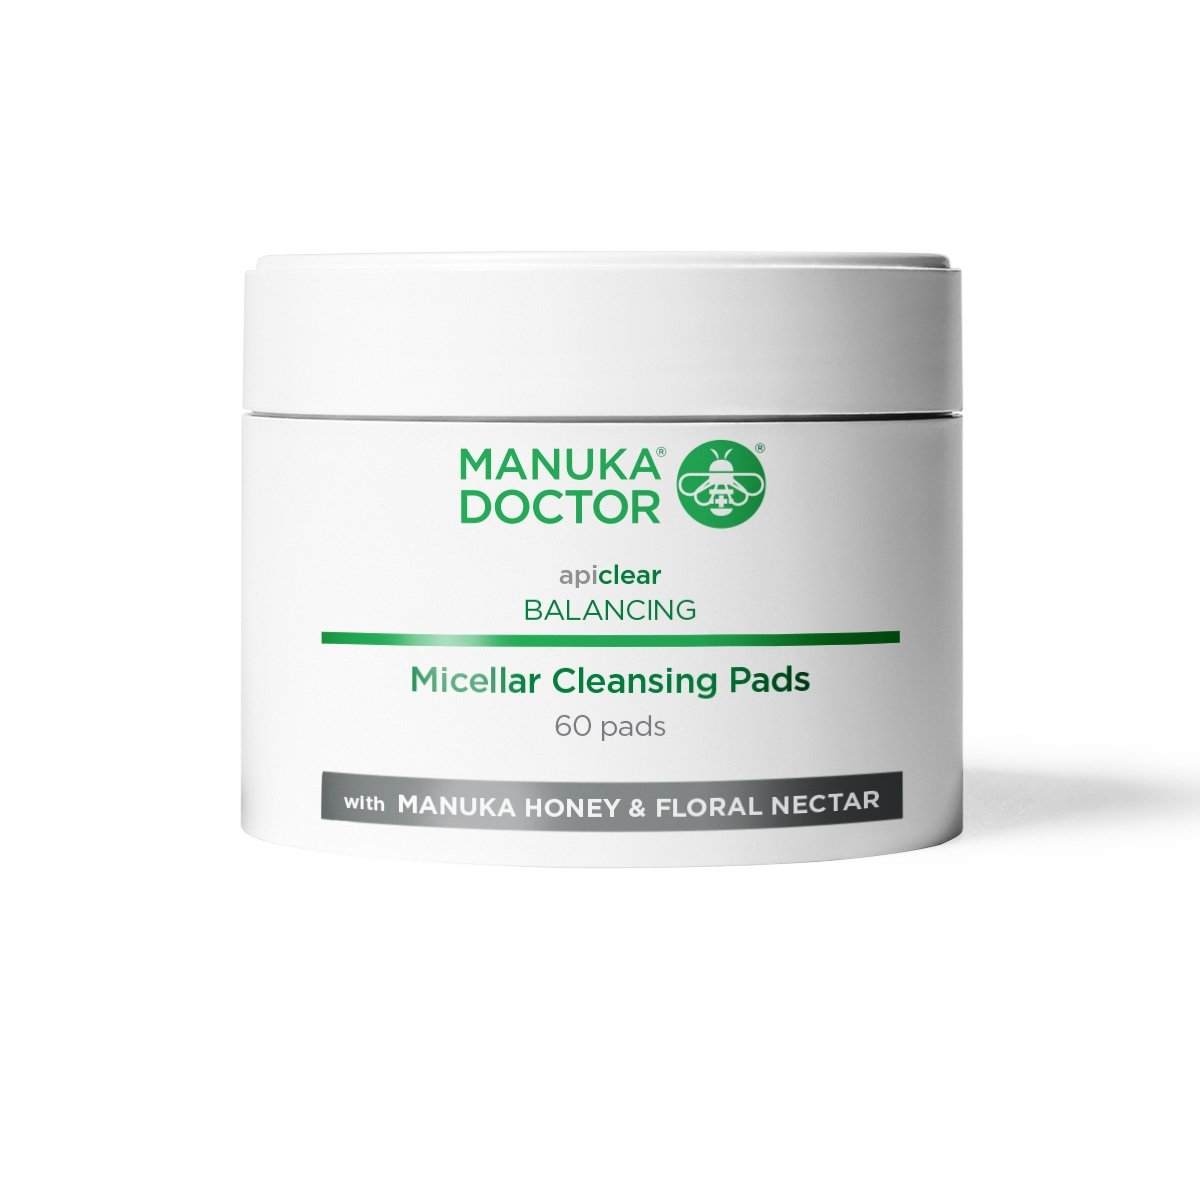 Manuka Doctor Apiclear Micellar Cleansing Pads - 60 Pads MD122